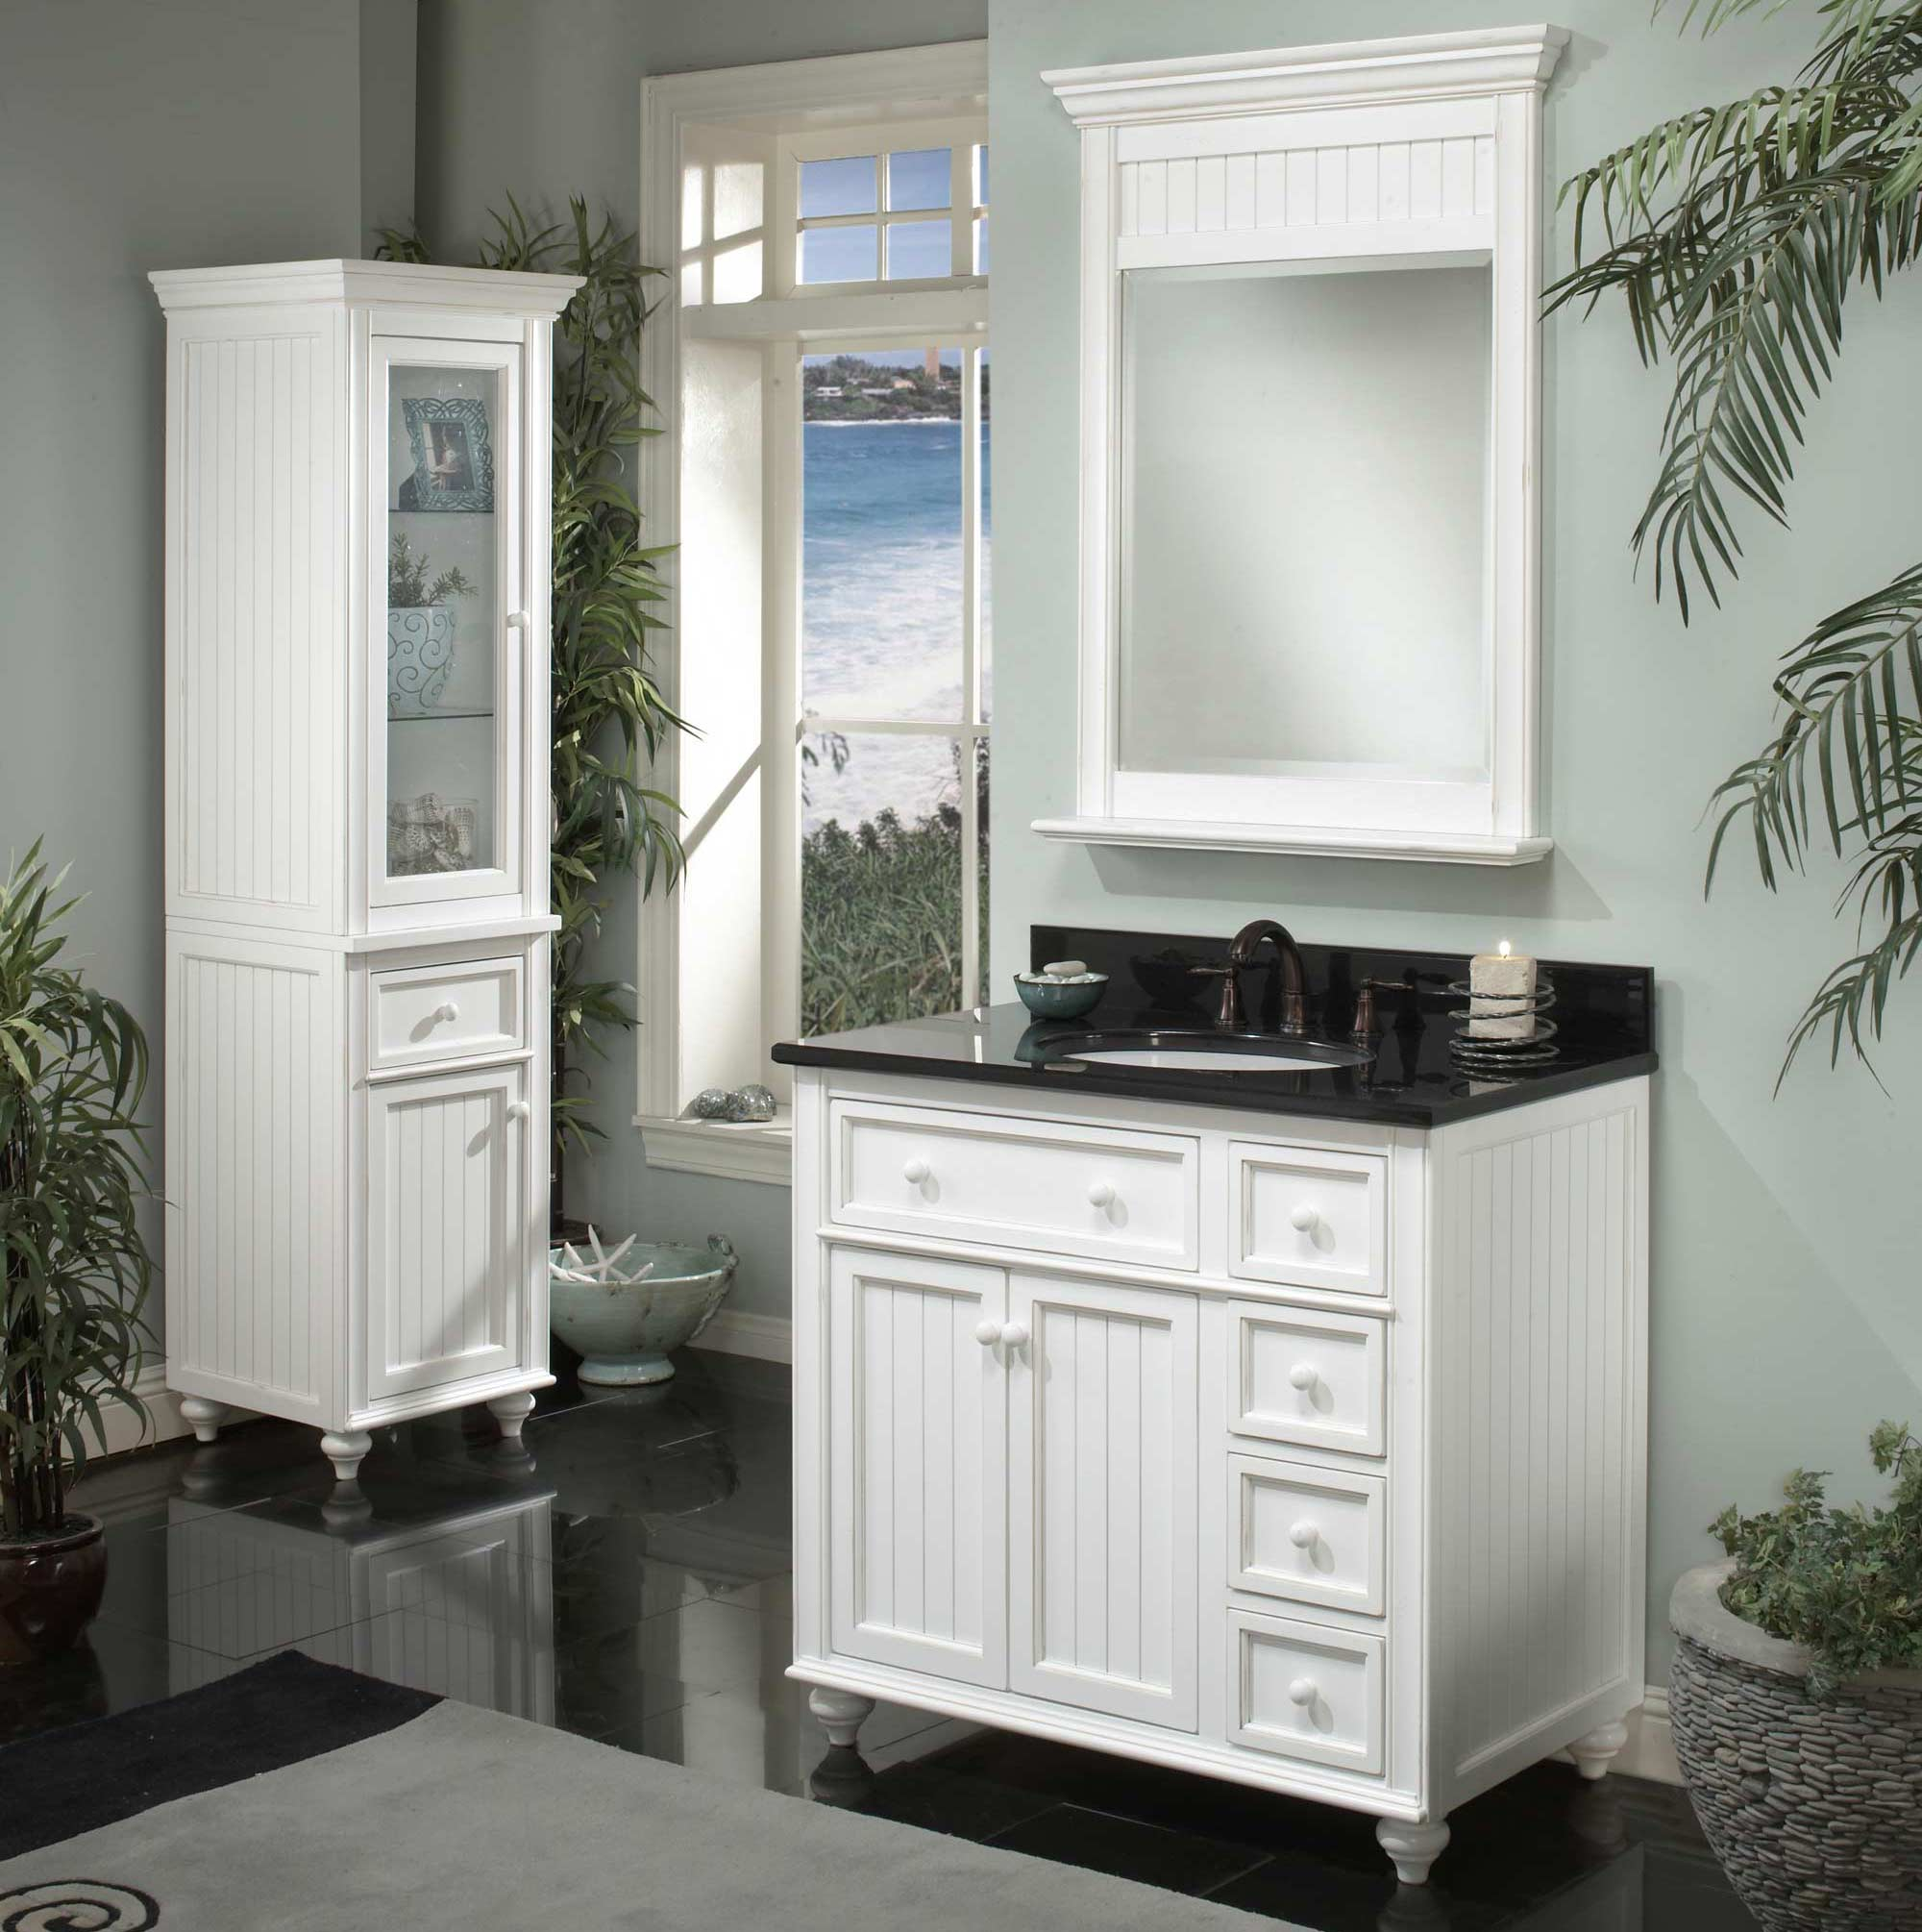 Bathroom Vanities By Sagehill Designs For A Relaxing Seaside Cottage